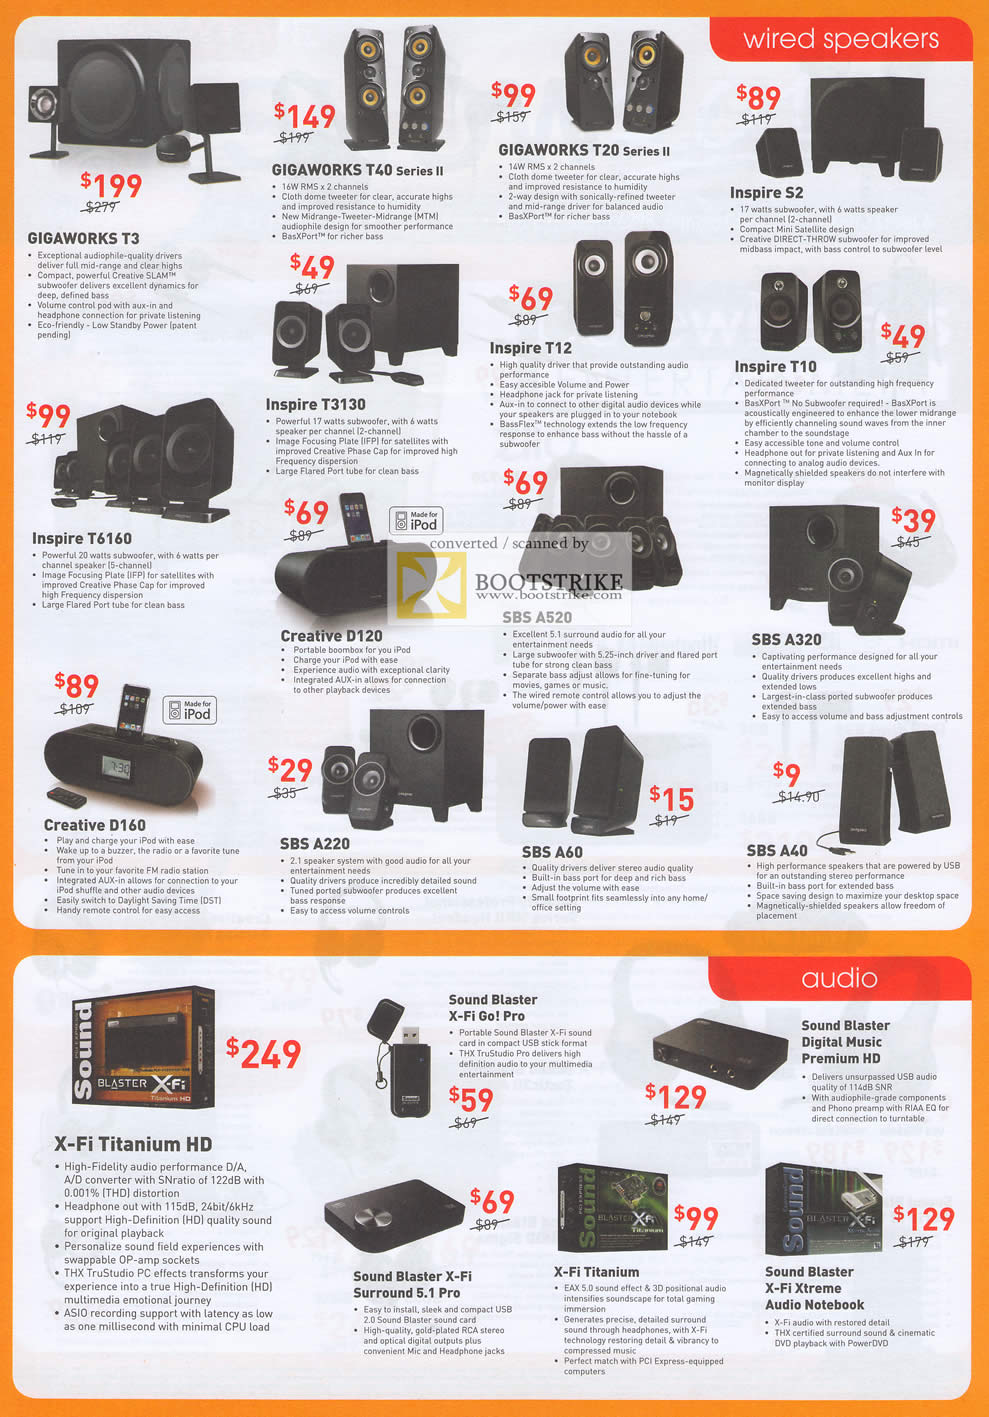 IT Show 2011 price list image brochure of Creative Speakers Gigaworks T3 T40 T20 II Inspire S2 T3130 T12 D120 SBS A320 D160 A220 A60 A40 X-Fi Titanium HD Go Pro Premium HD X-Fi Xtreme Audio Notebook